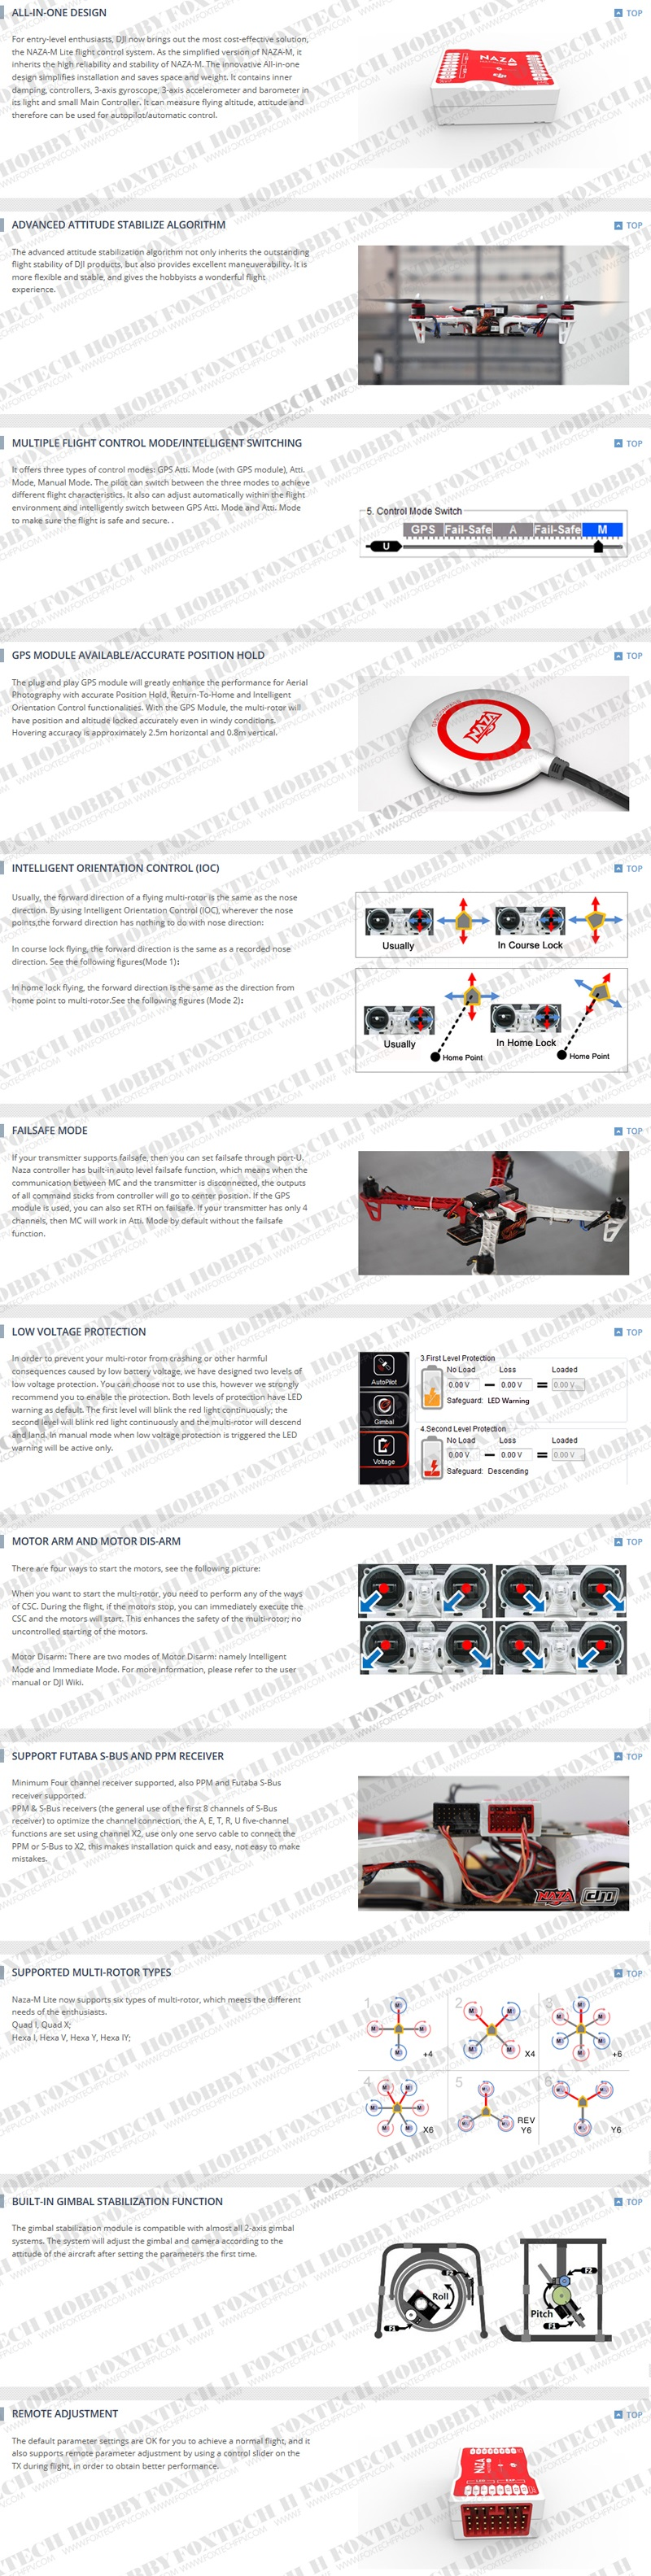 Foxtech Hobbyyour One Stop Shop For Multicopter Fpv Uav Dji T Motor Naza M Lite Wiring Diagram This Product Was Added To Our Catalog On Monday 21 May 2012